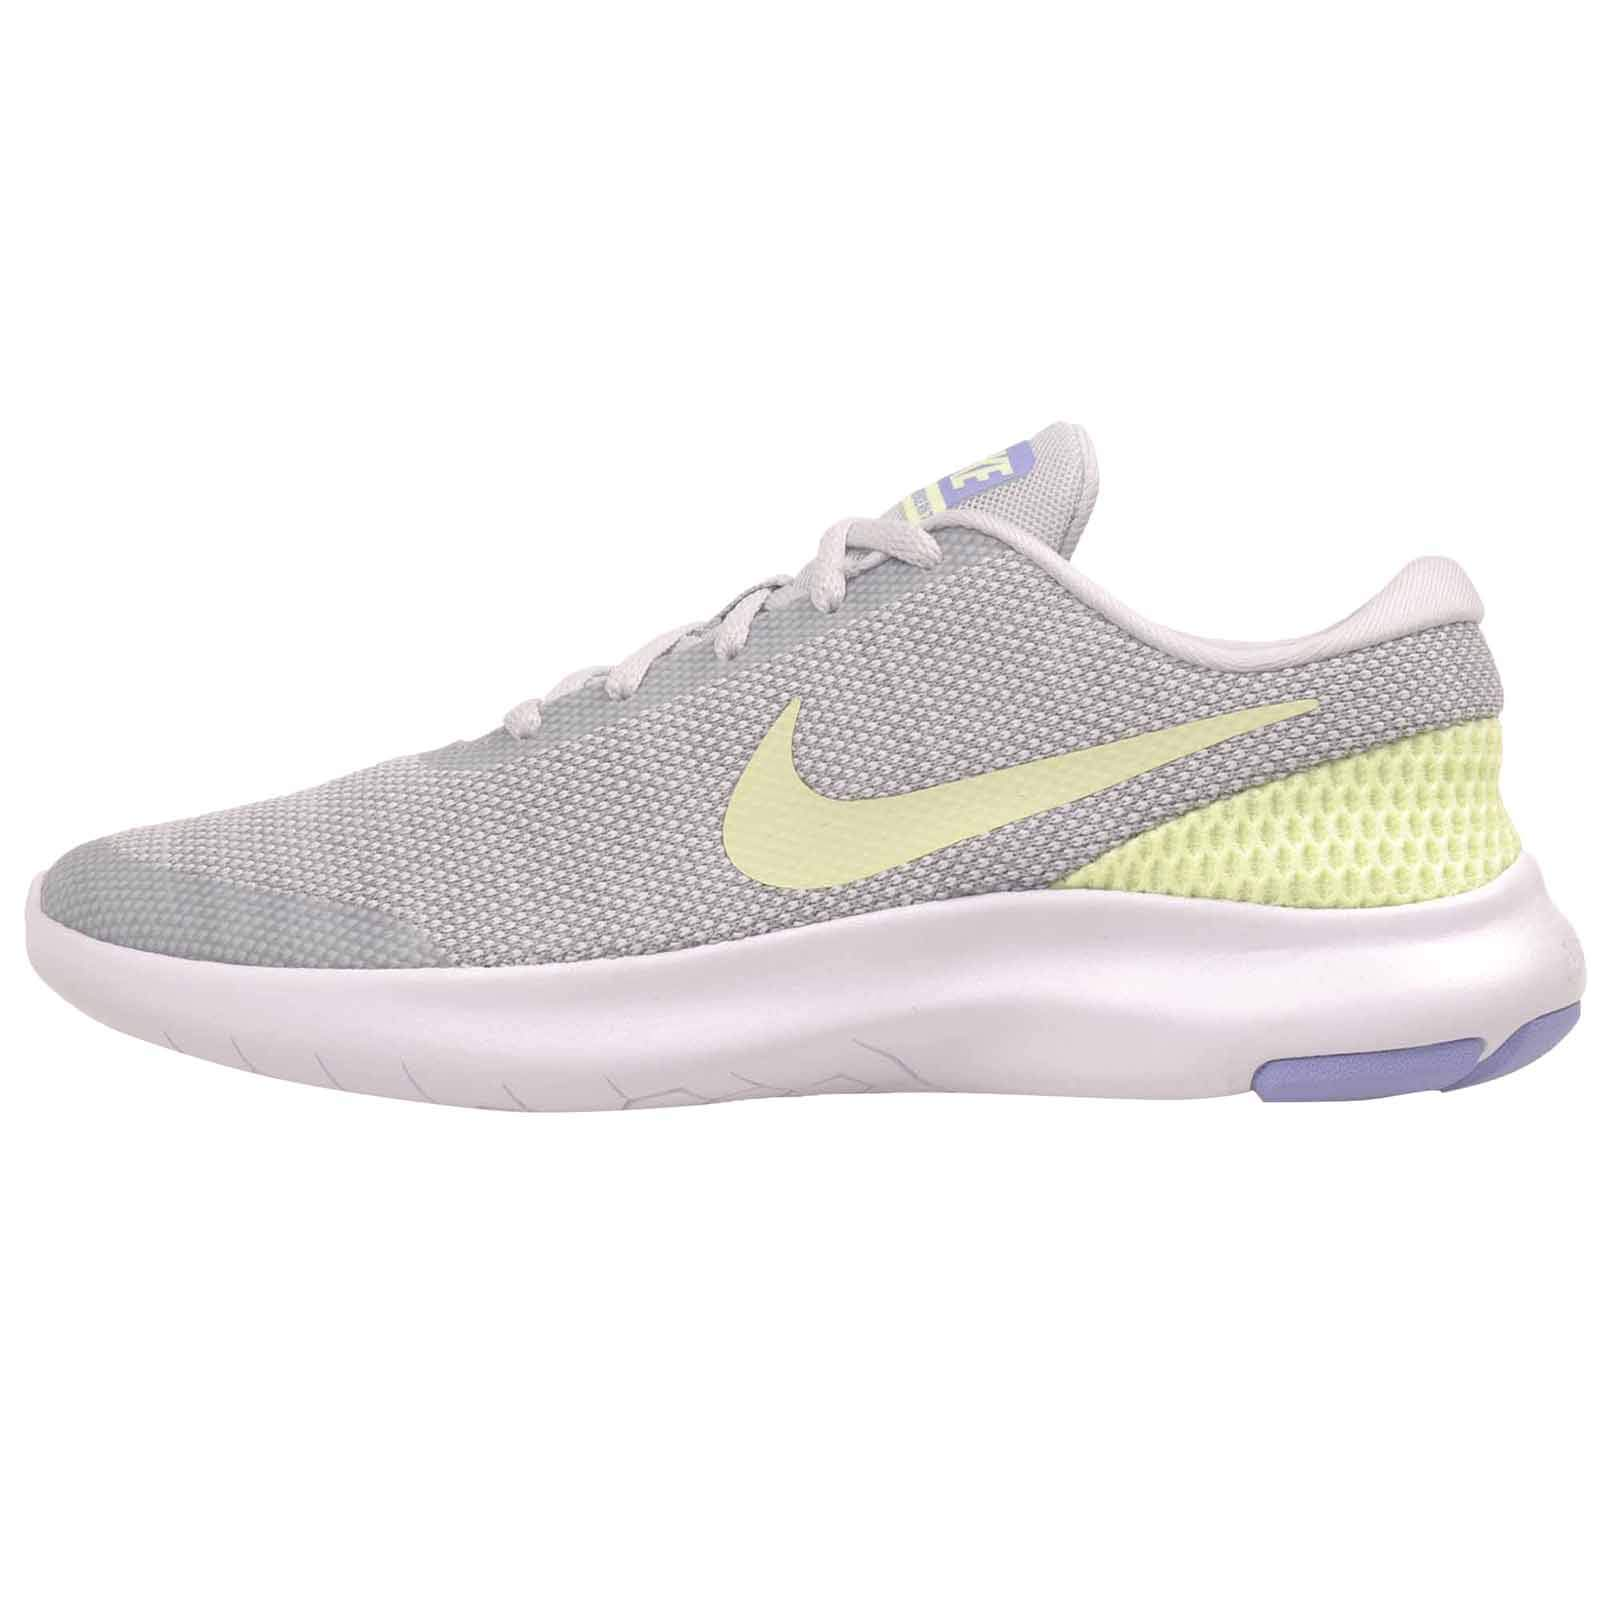 Nike Women's Flex Experience 7 Running Shoe (8, Pure PlatinumBarely Volt Wolf Grey)